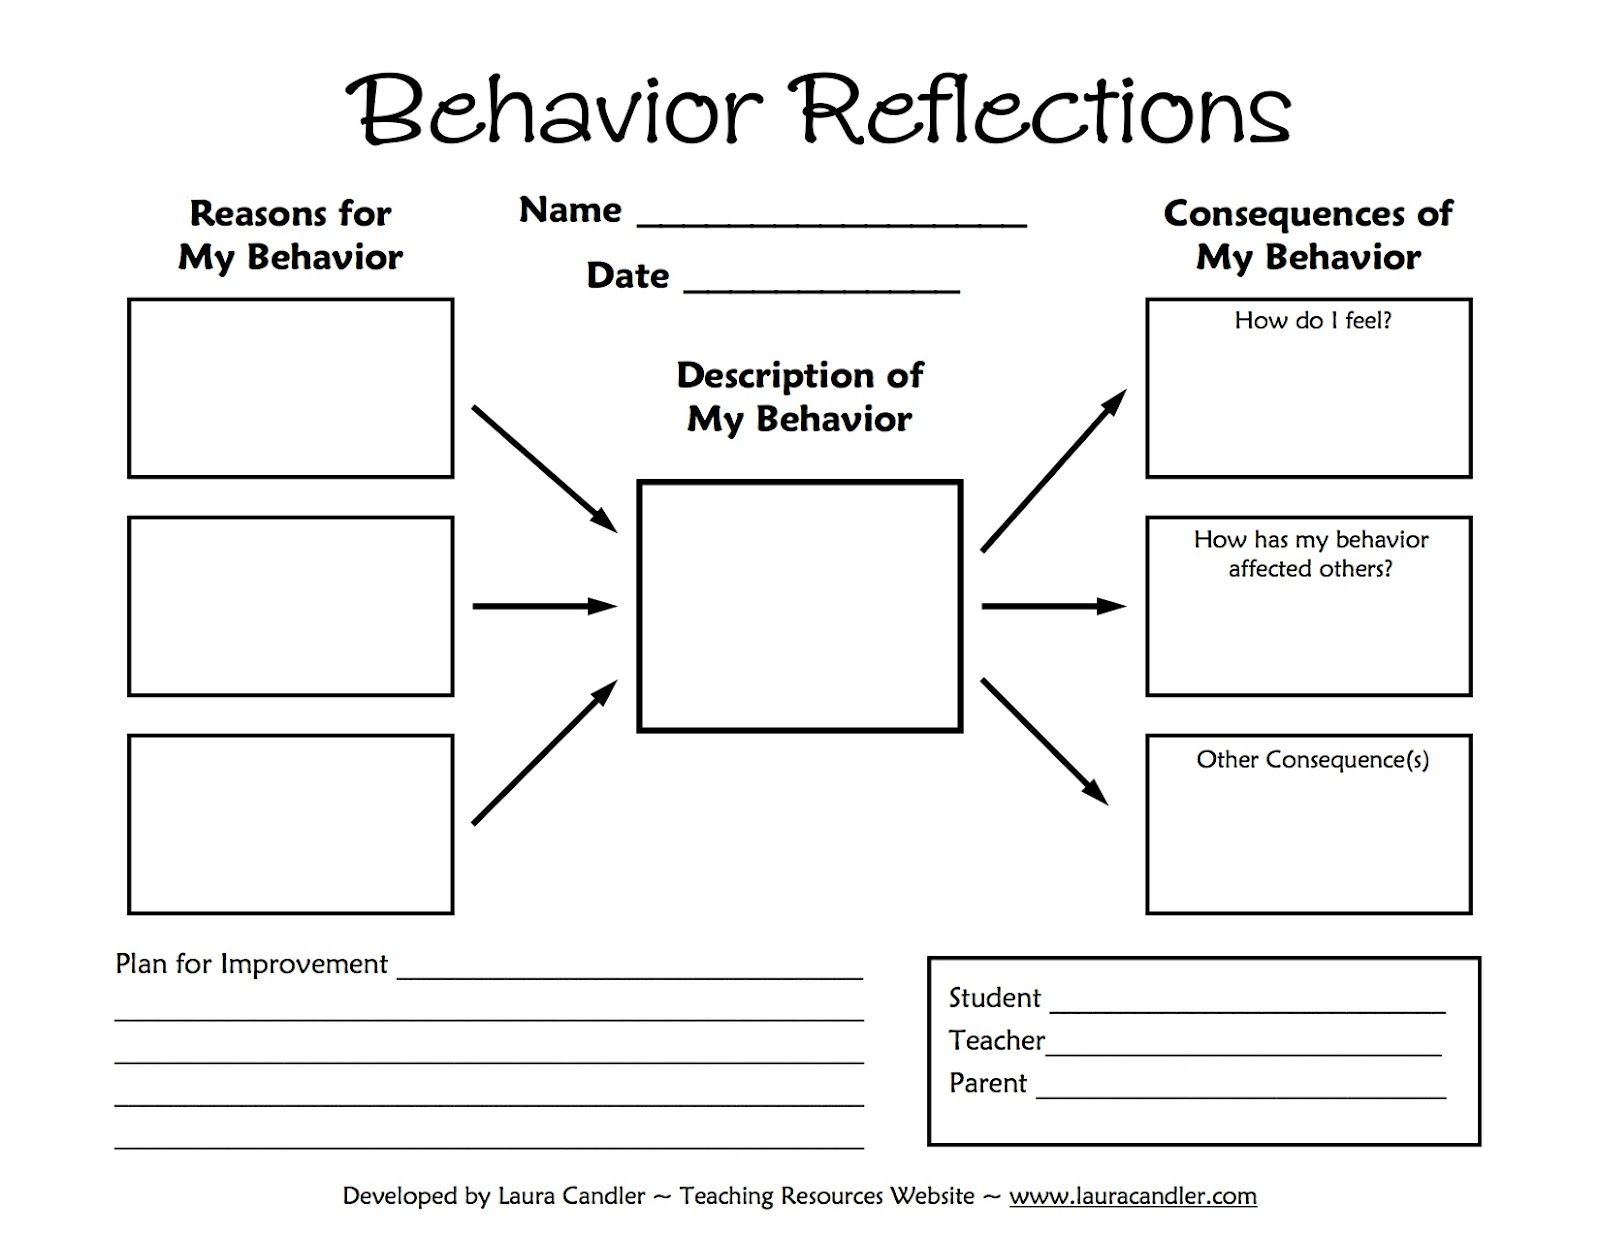 Reflections sheet juveique27 tween teaching behavior reflections sheet school pinterest ibookread ePUb